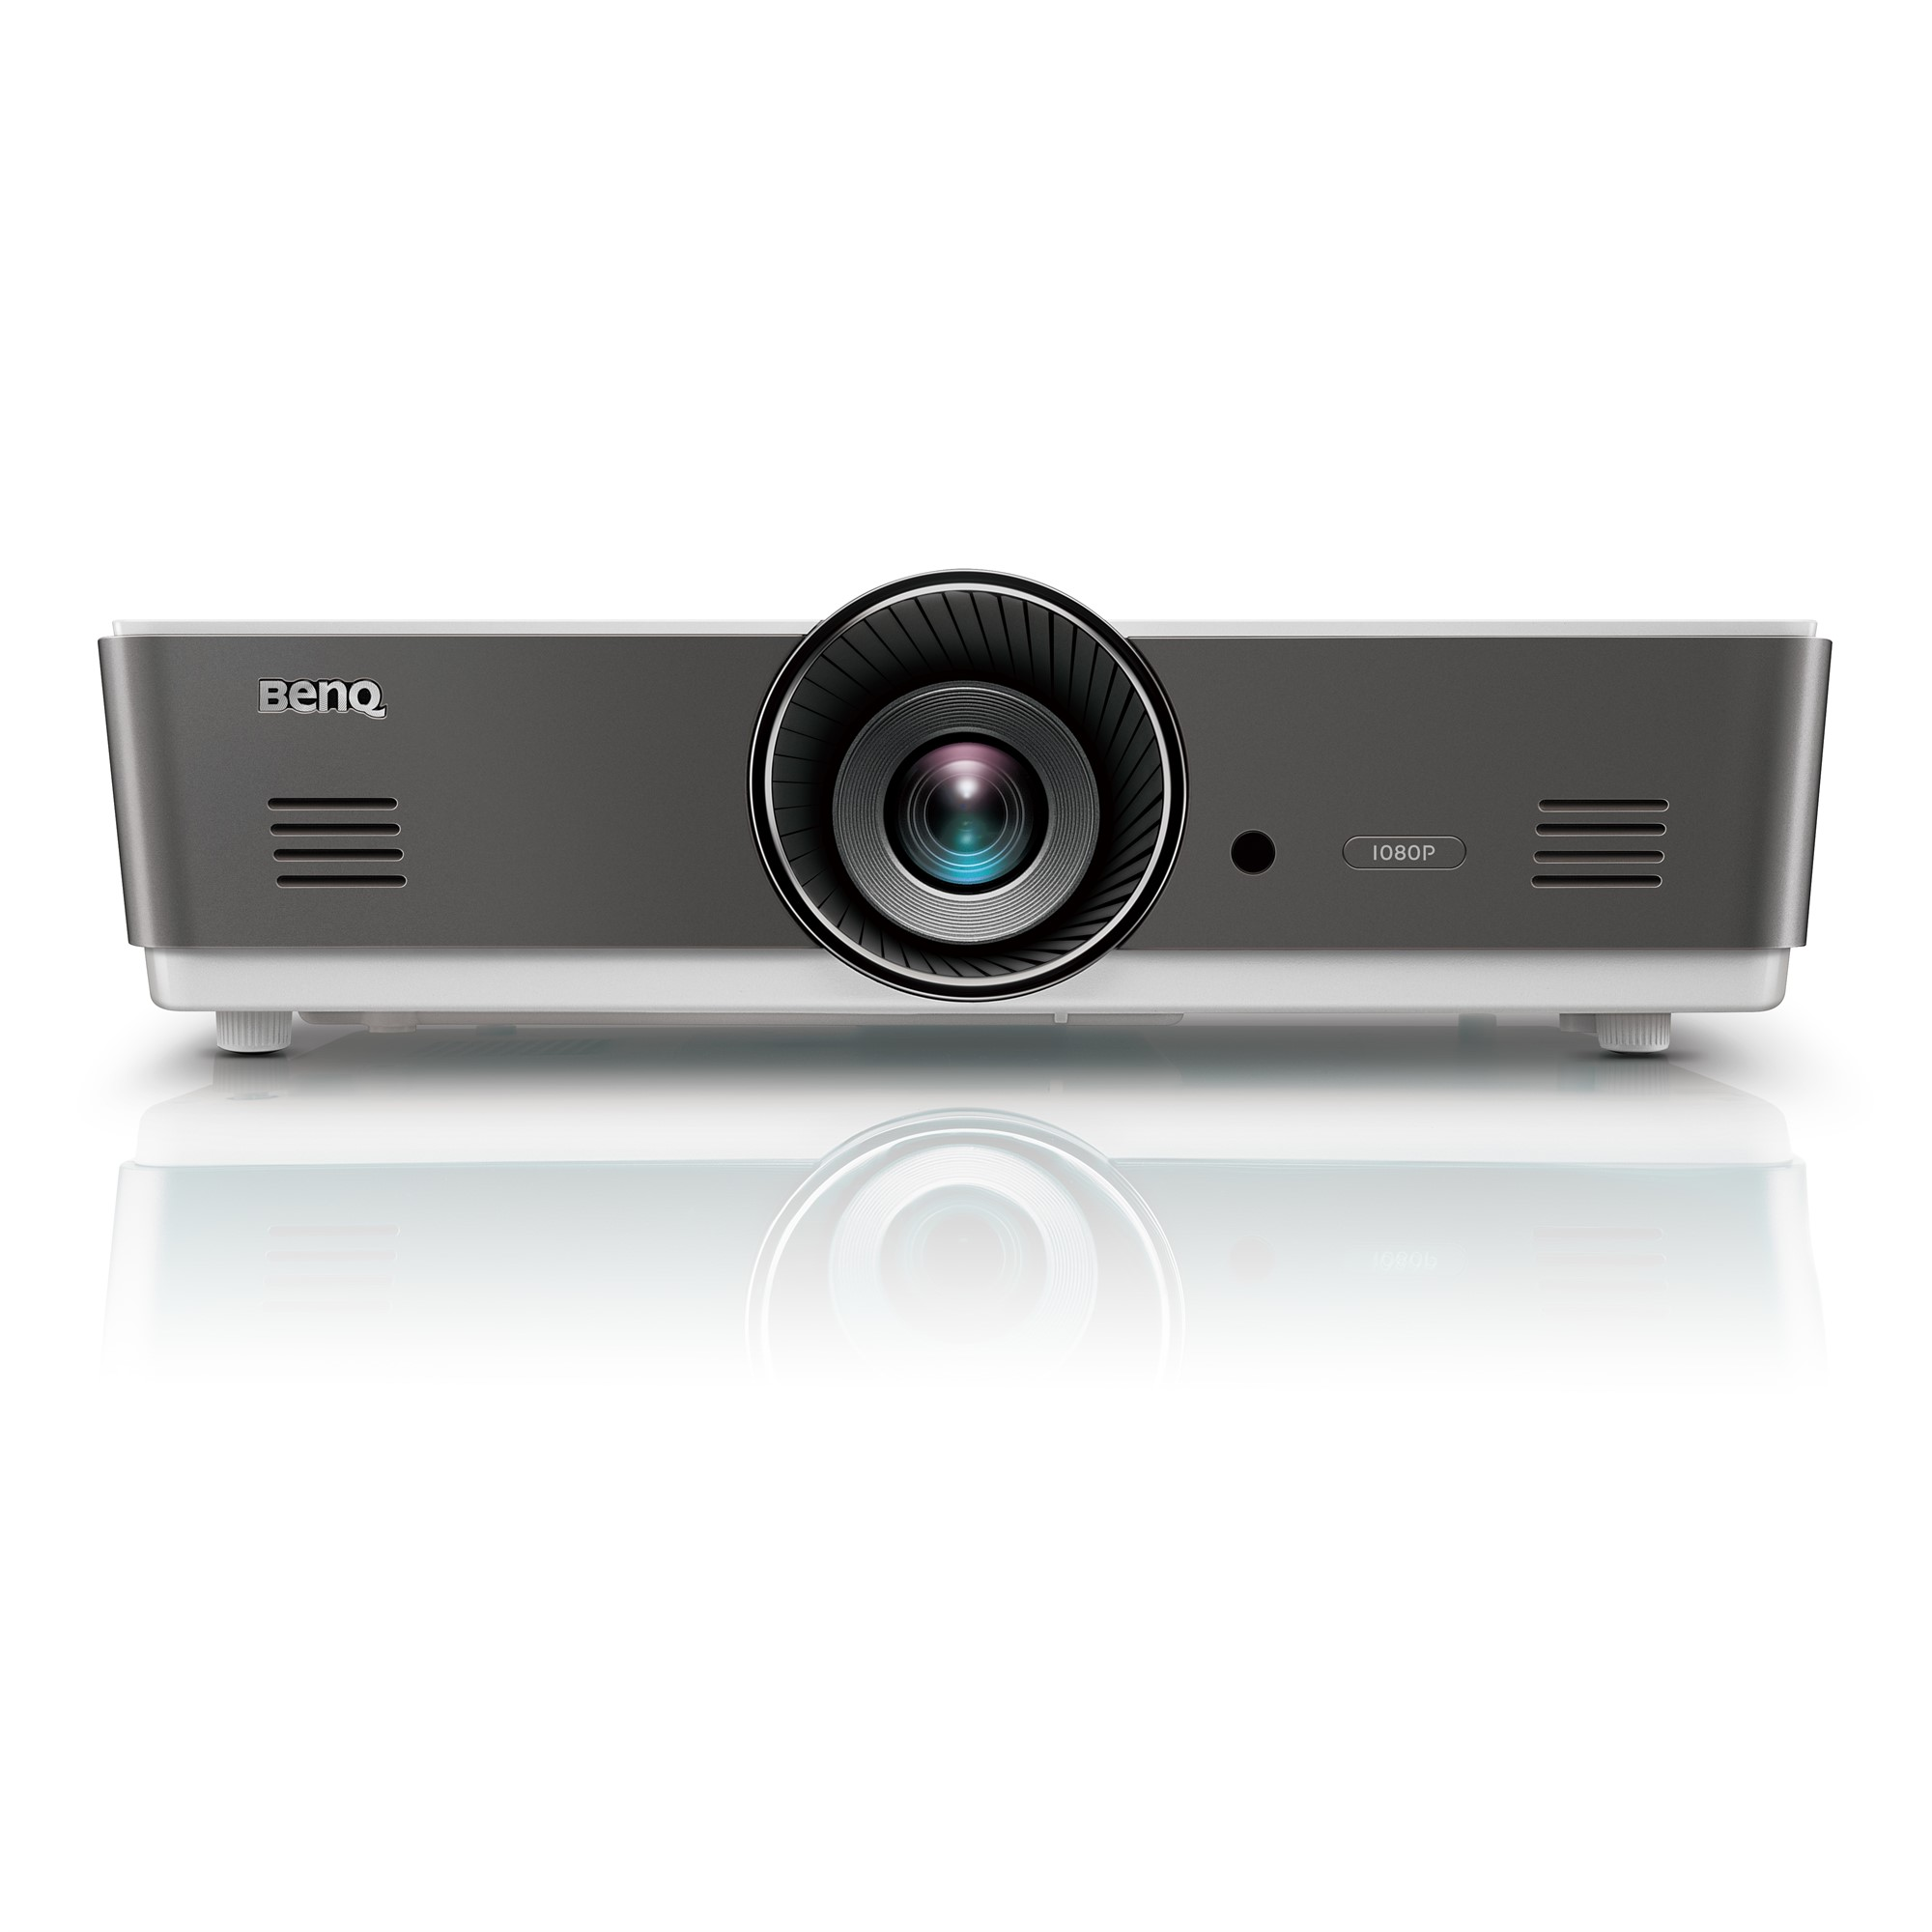 BENQ MH760 DESKTOP PROJECTOR 5000ANSI LUMENS DLP 1080P (1920X1080) BLACK,GREY DATA